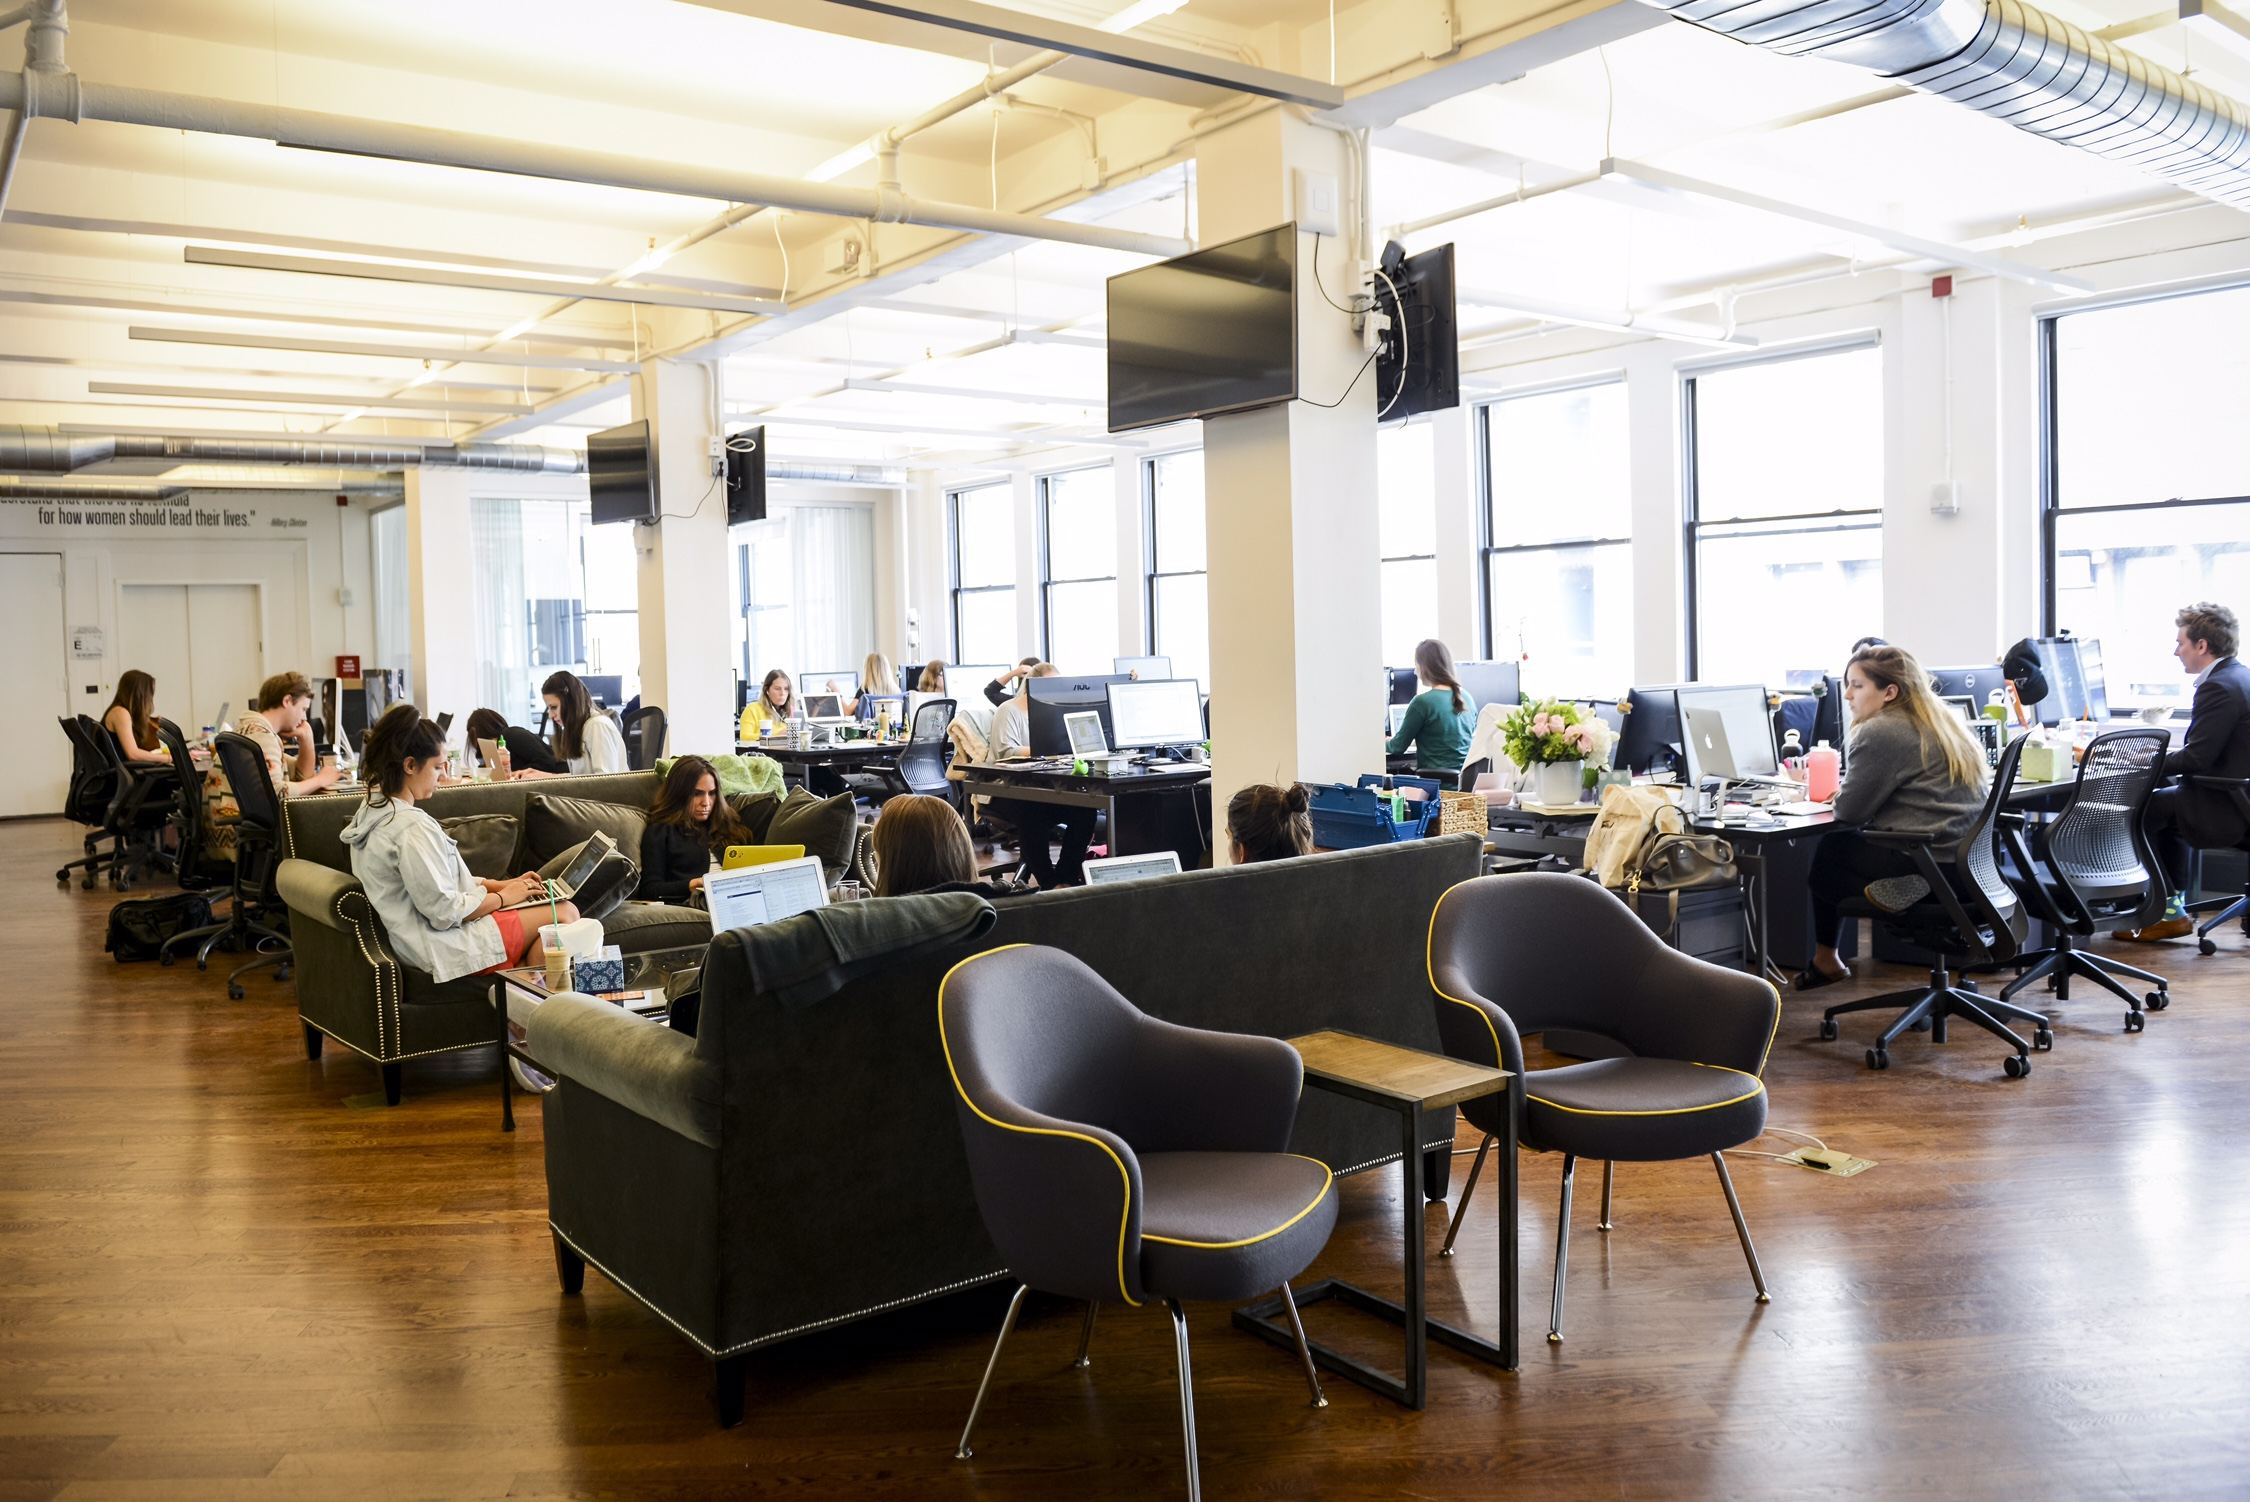 The New York City headquarters of Bustle.